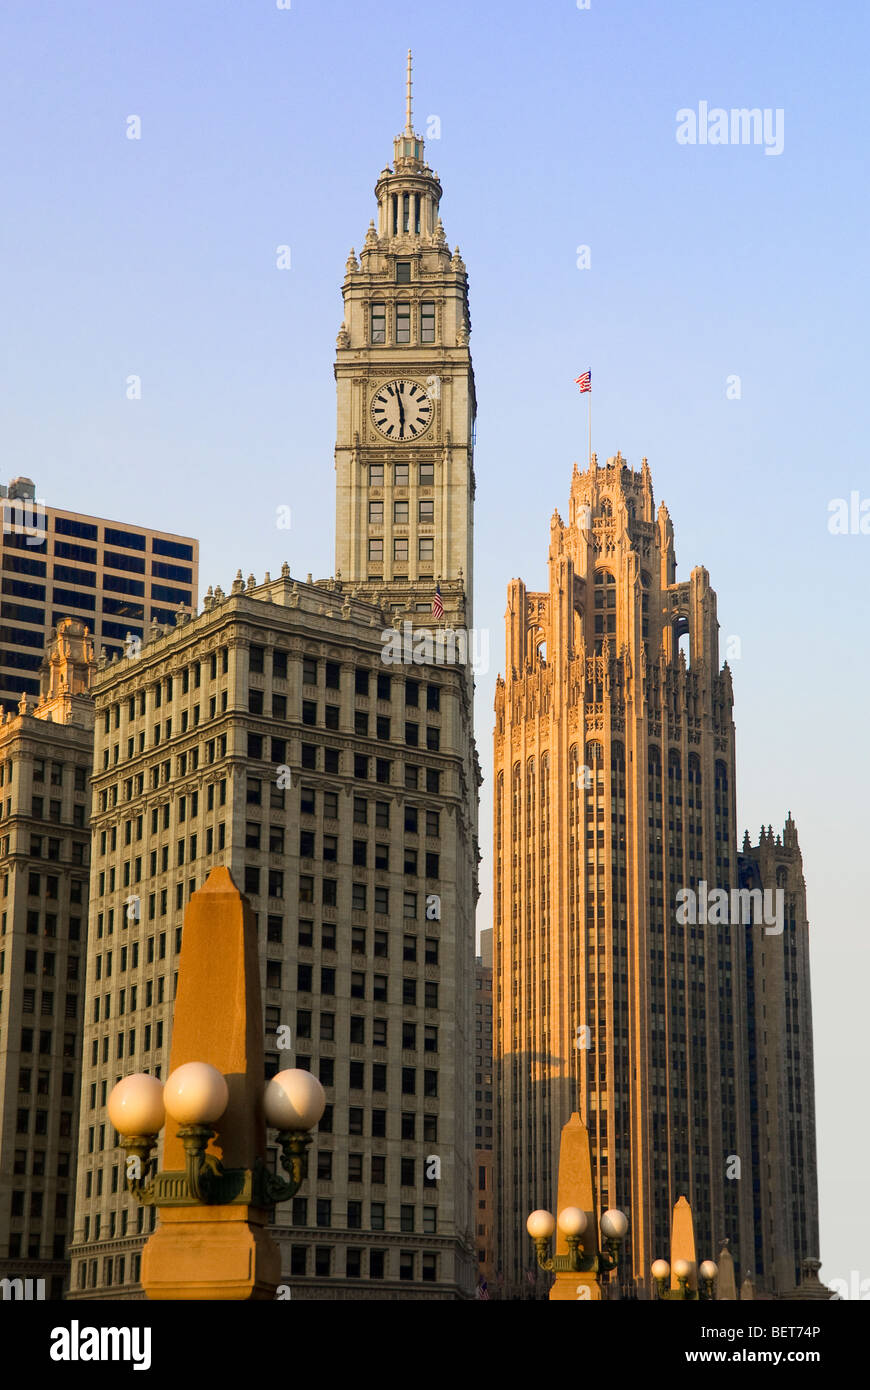 The Wringley Building and Tribune Tower in Chicago, Illinois, USA - Stock Image